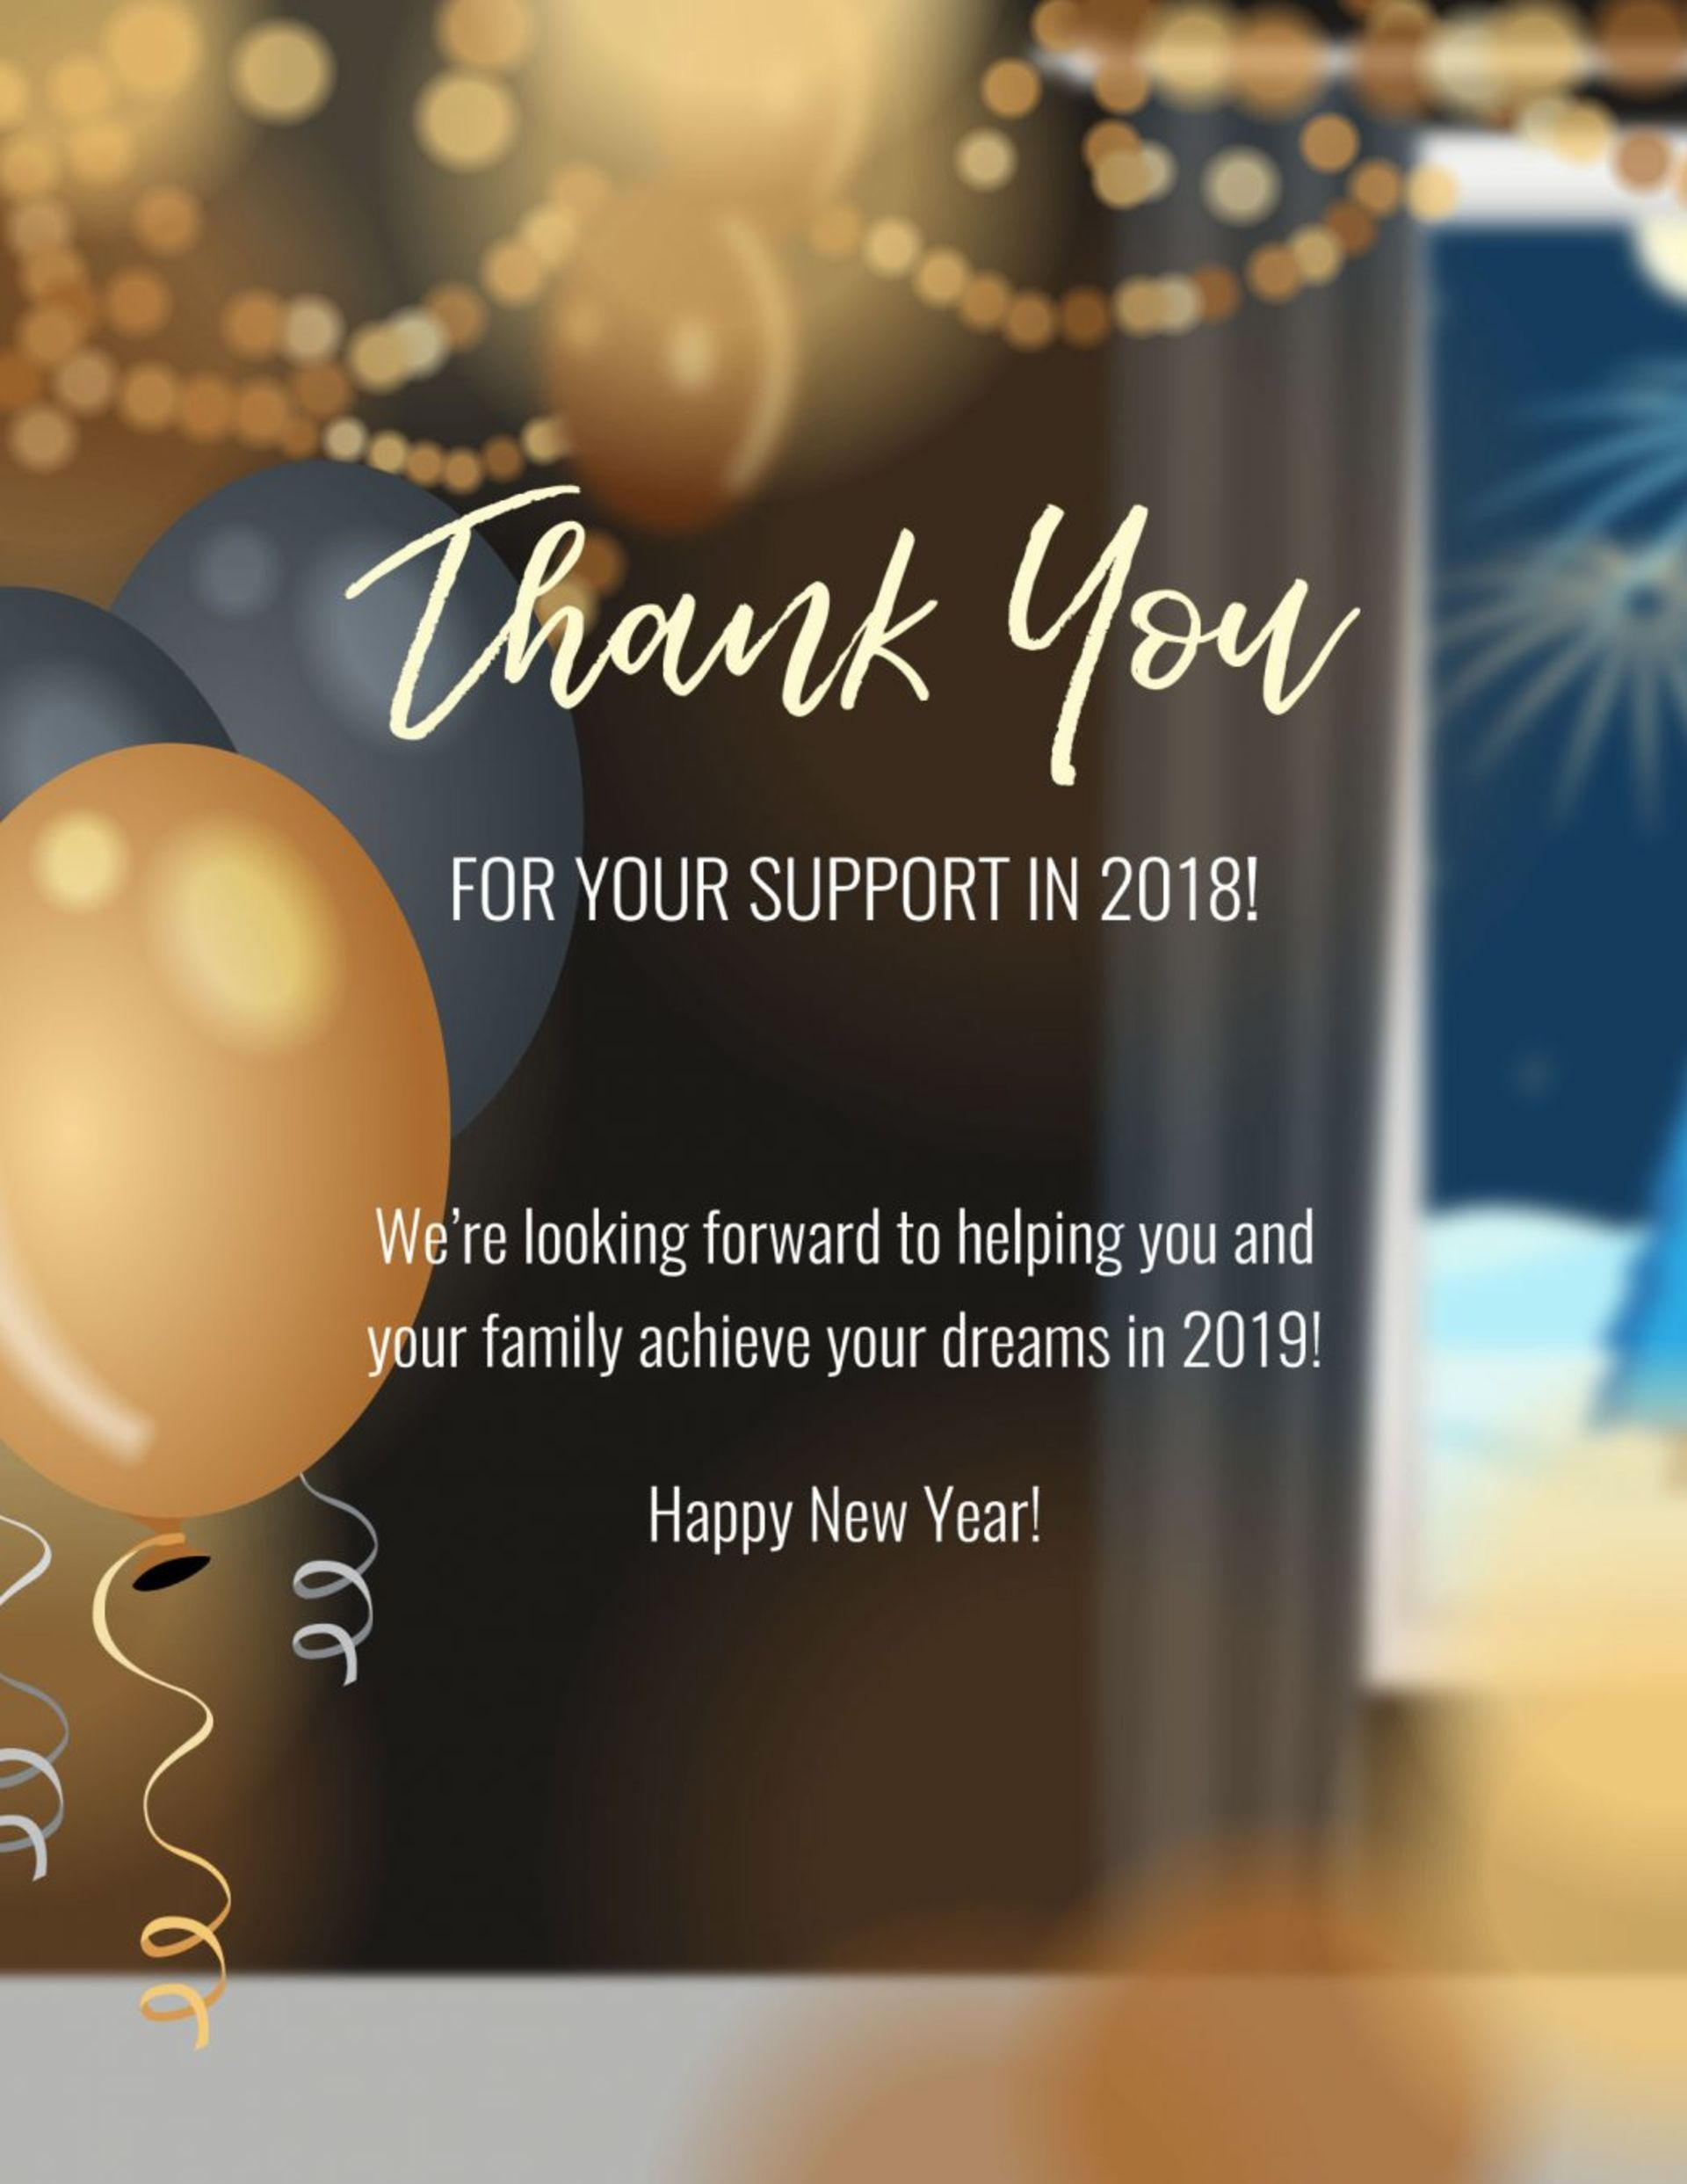 Here's To A Wonderful 2019